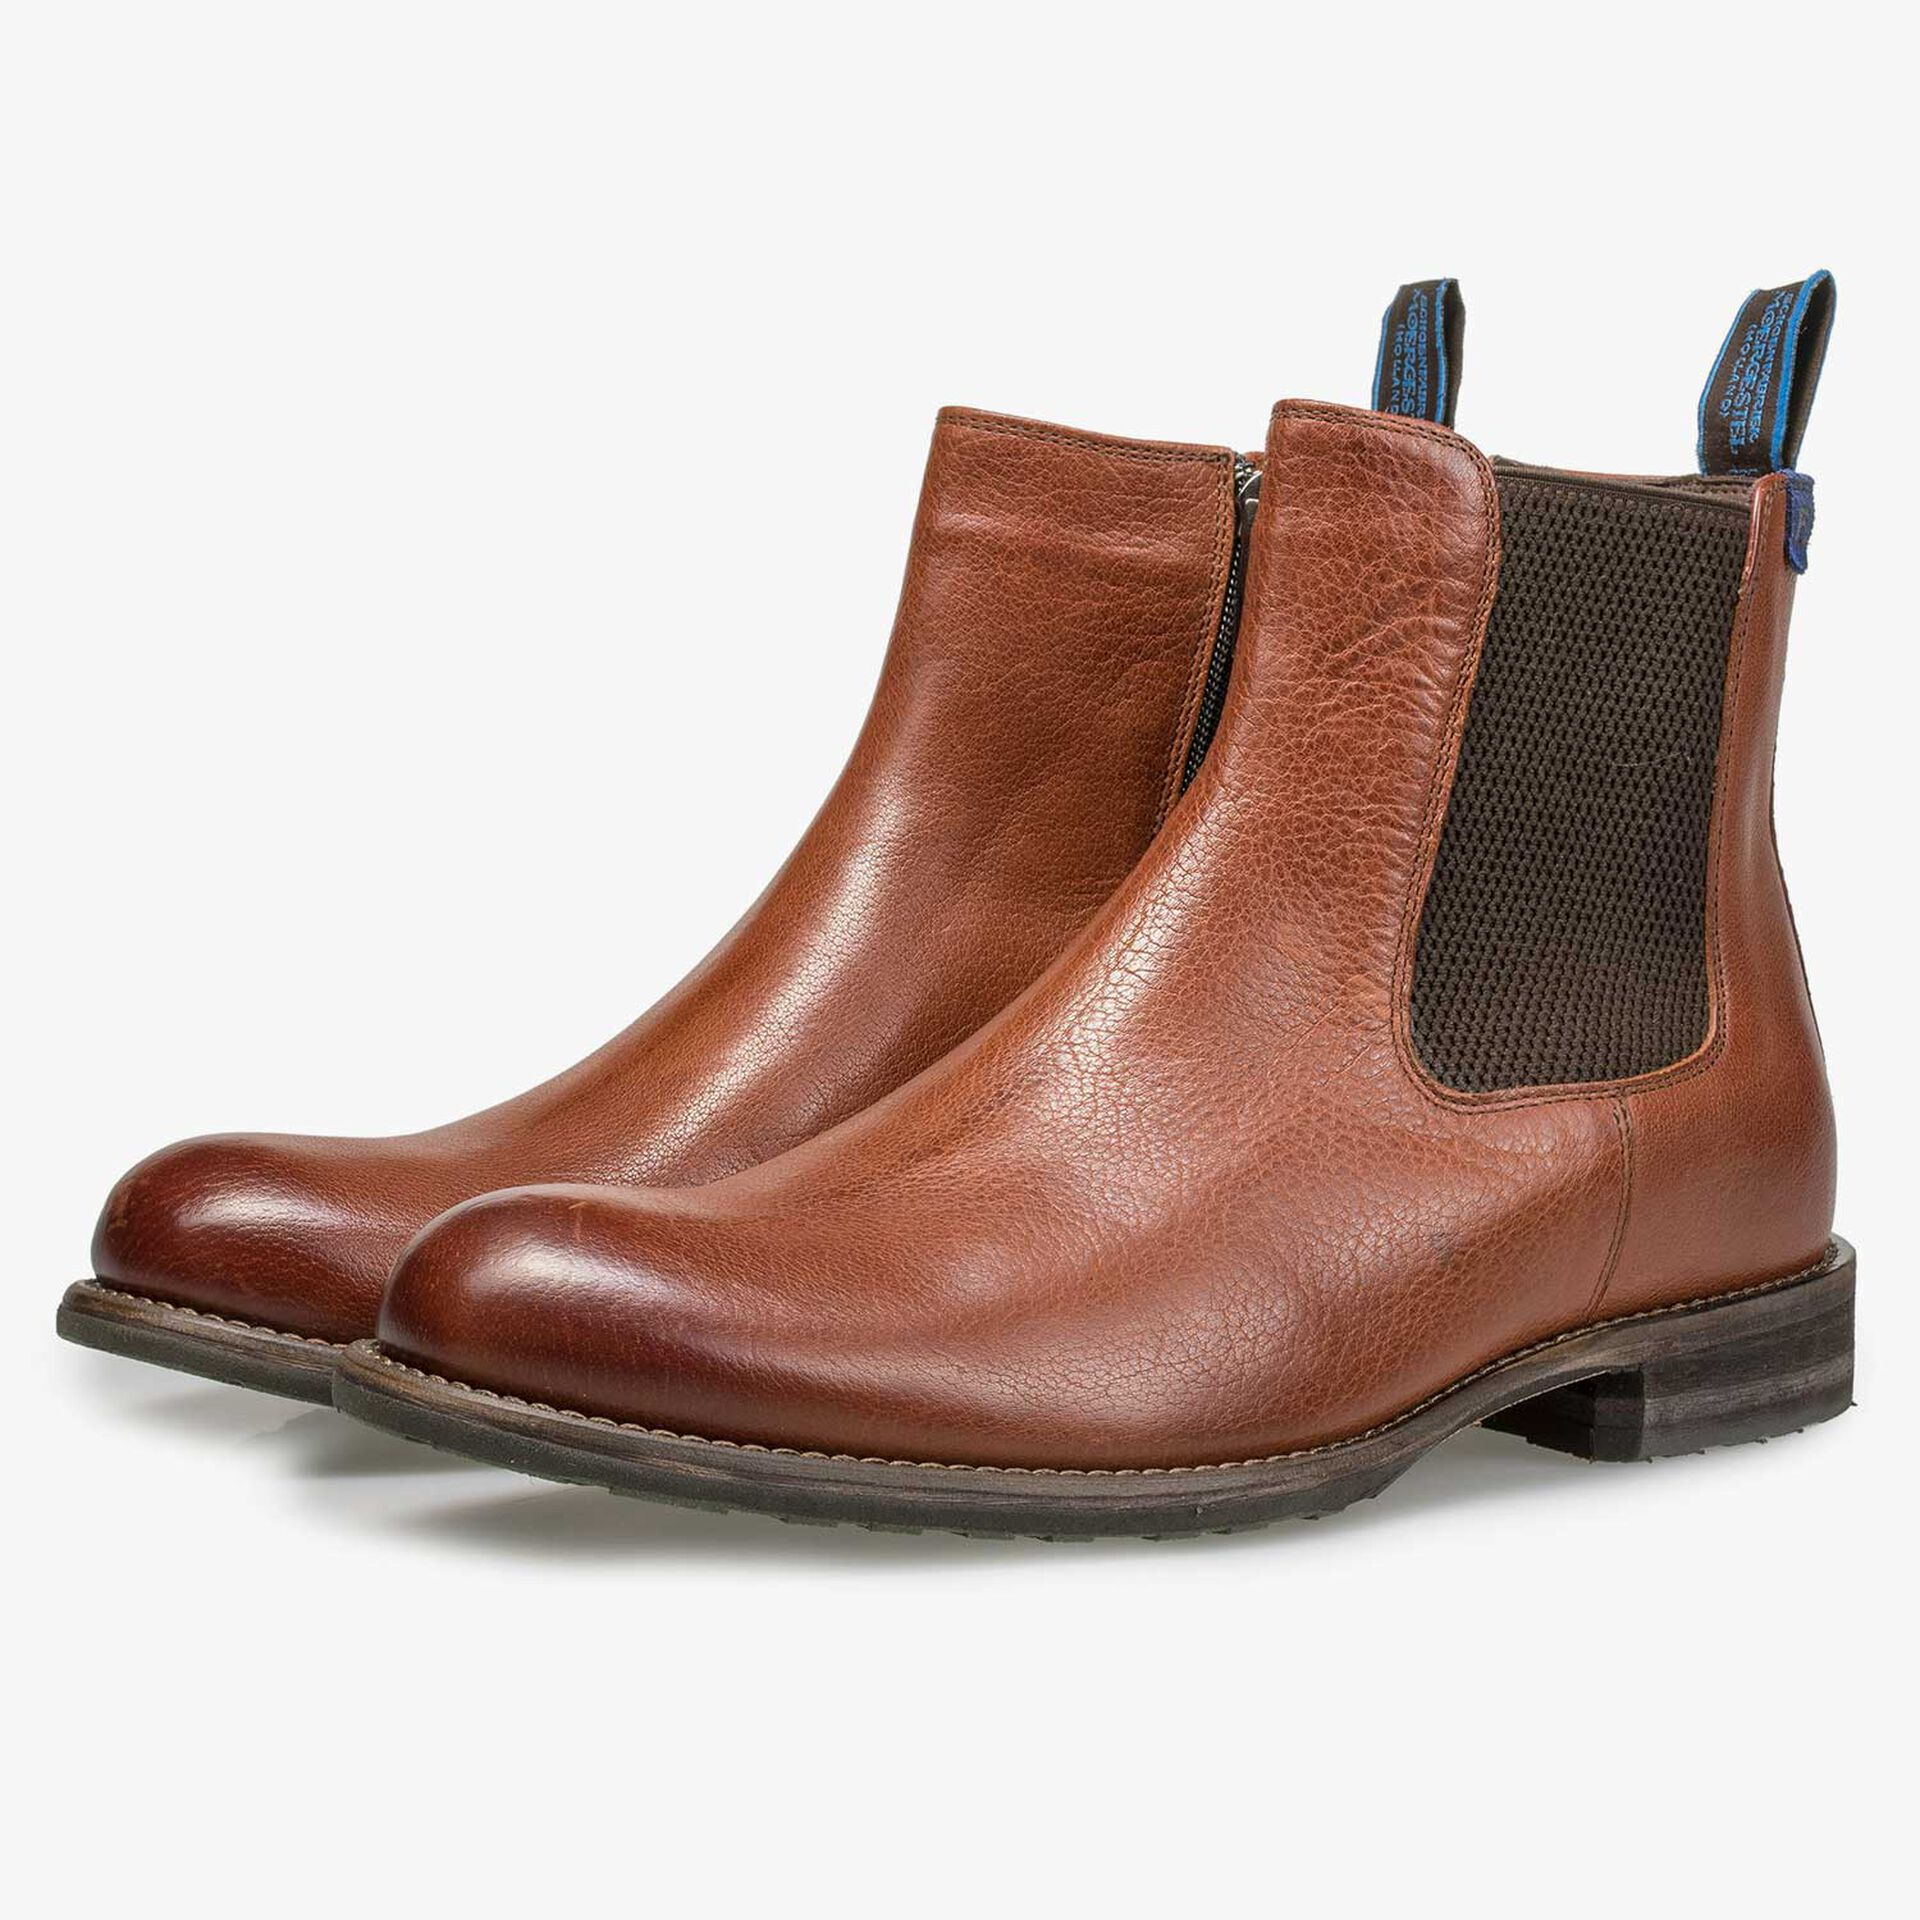 Lined cognac-coloured leather Chelsea boot